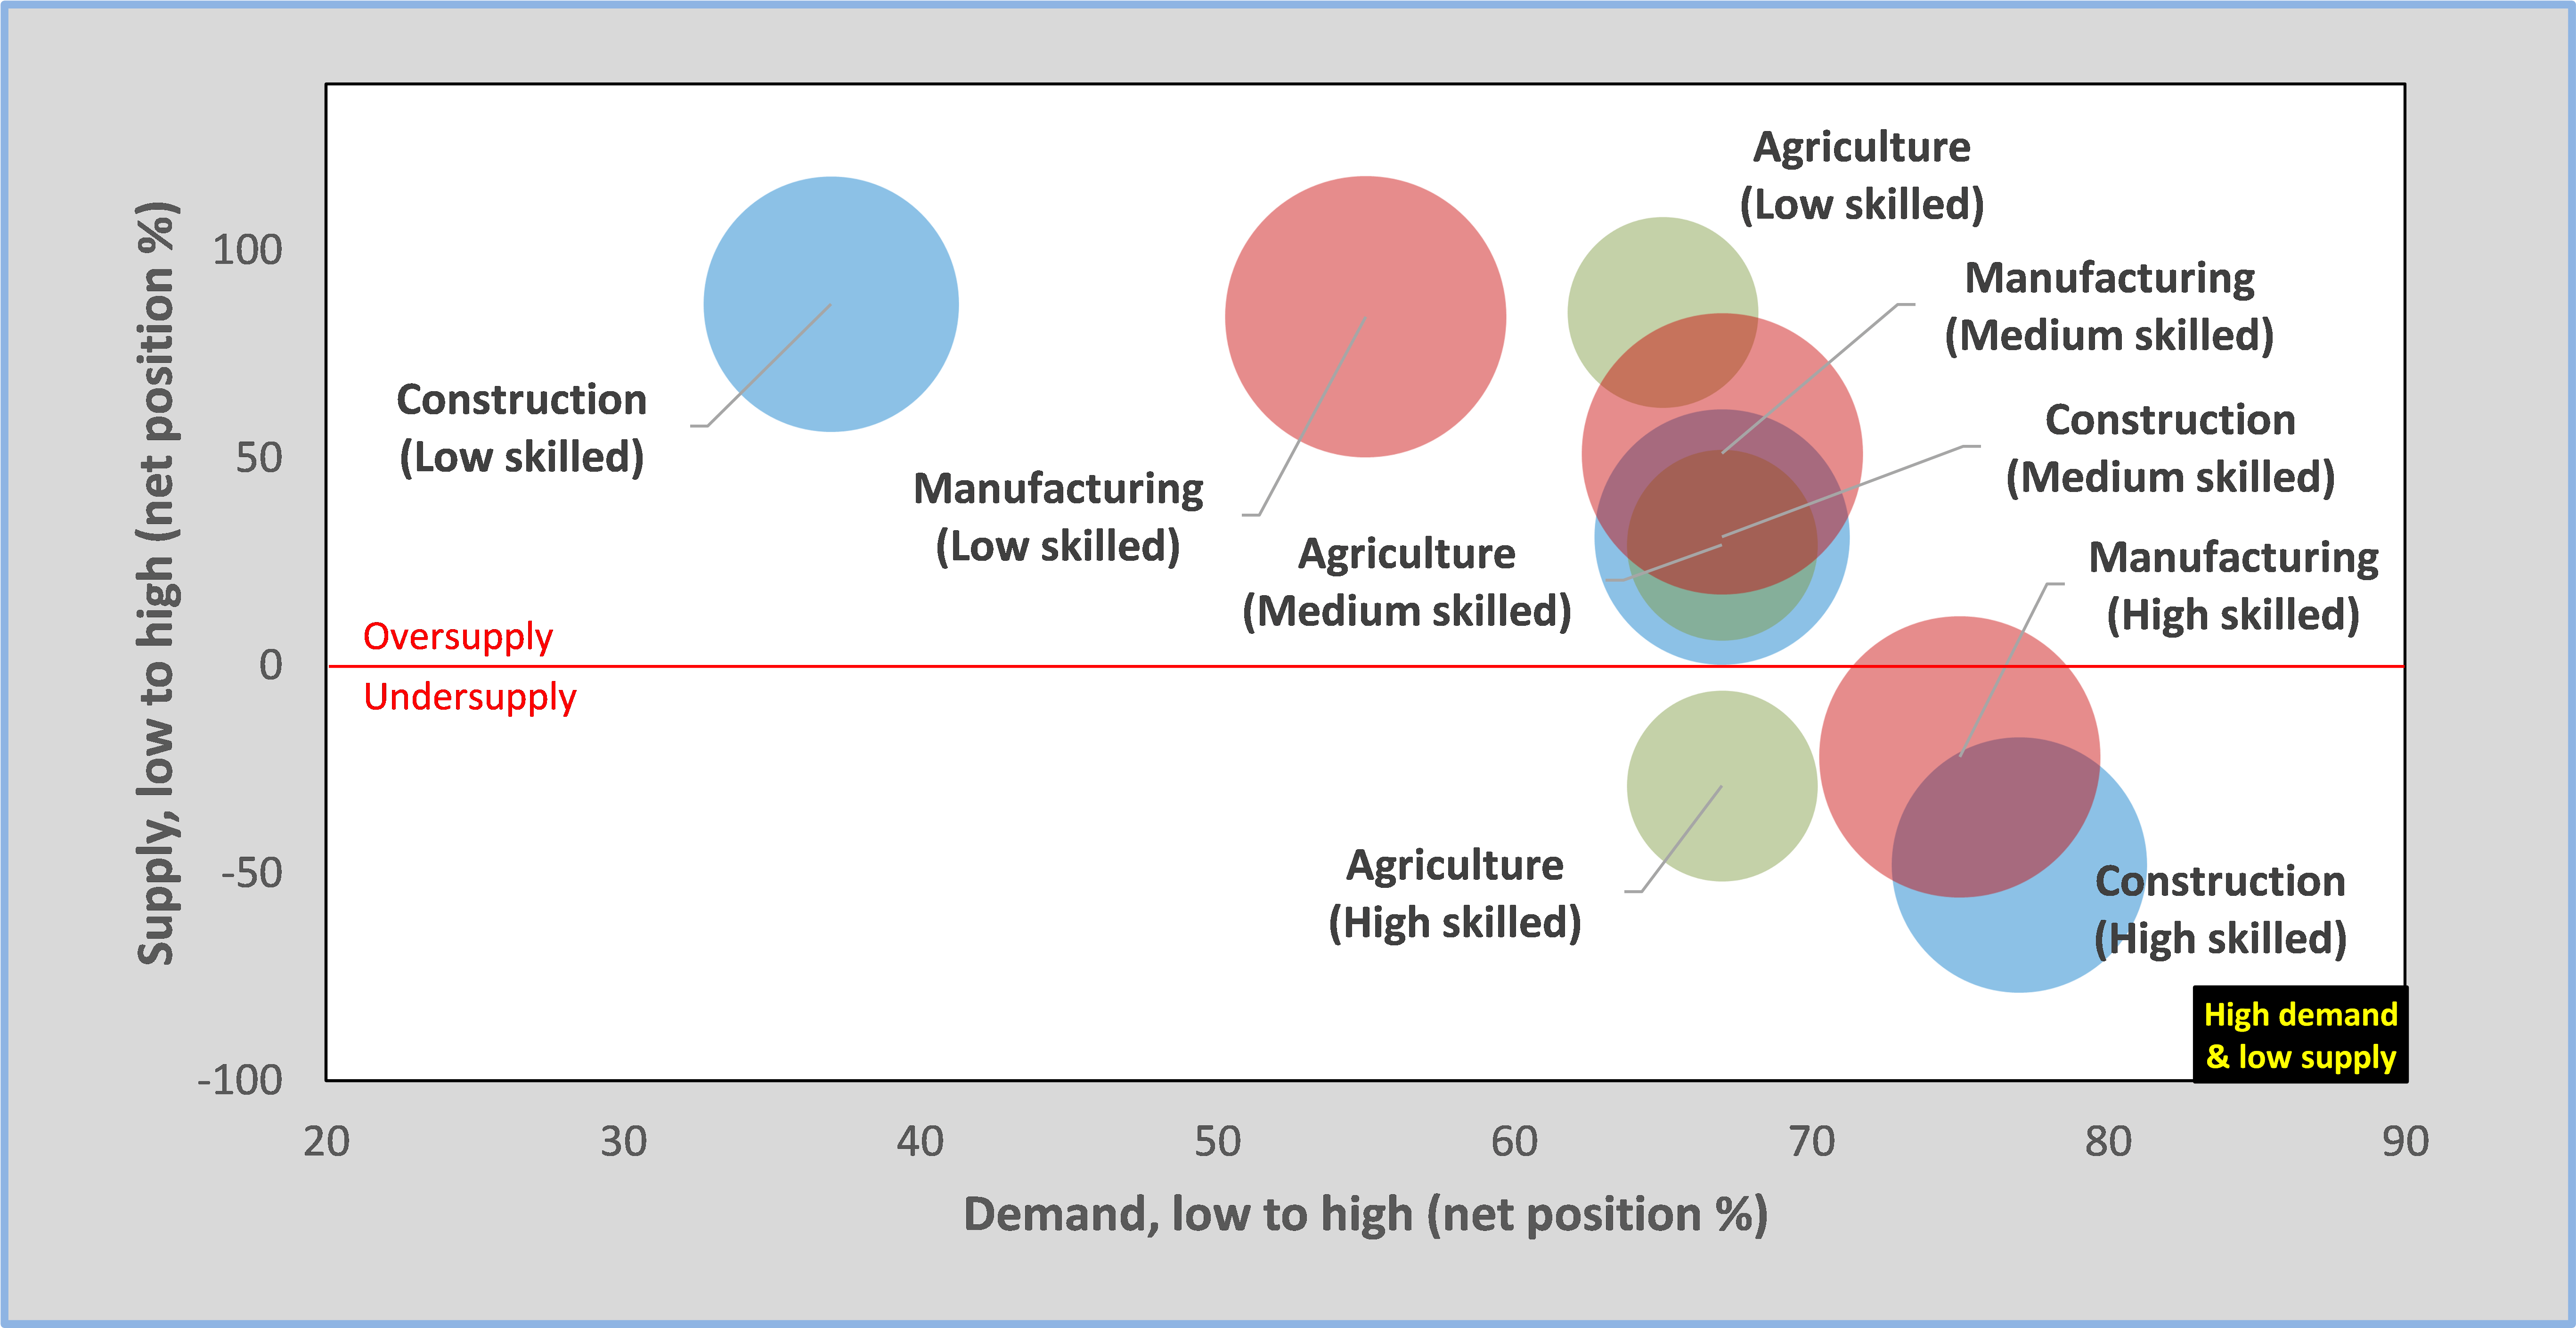 labour force demand and supply by skill level in Ethiopia